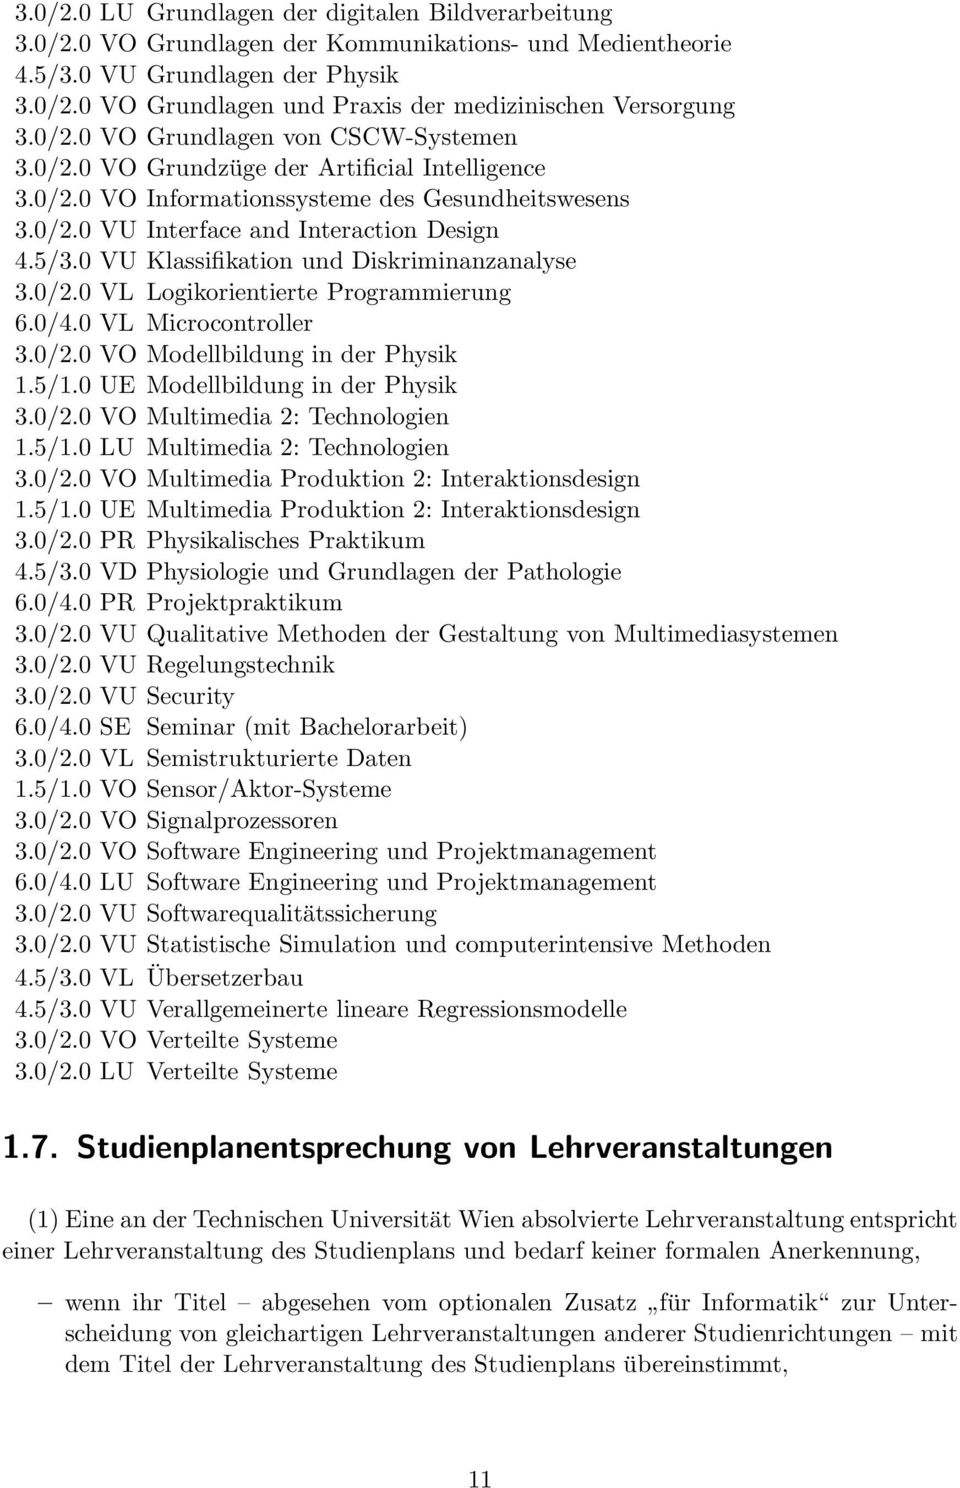 and Interaction Design 4.5/3.0 VU Klassifikation und Diskriminanzanalyse 3.0/2.0 VL Logikorientierte Programmierung 6.0/4.0 VL Microcontroller Modellbildung in der Physik 1.5/1.